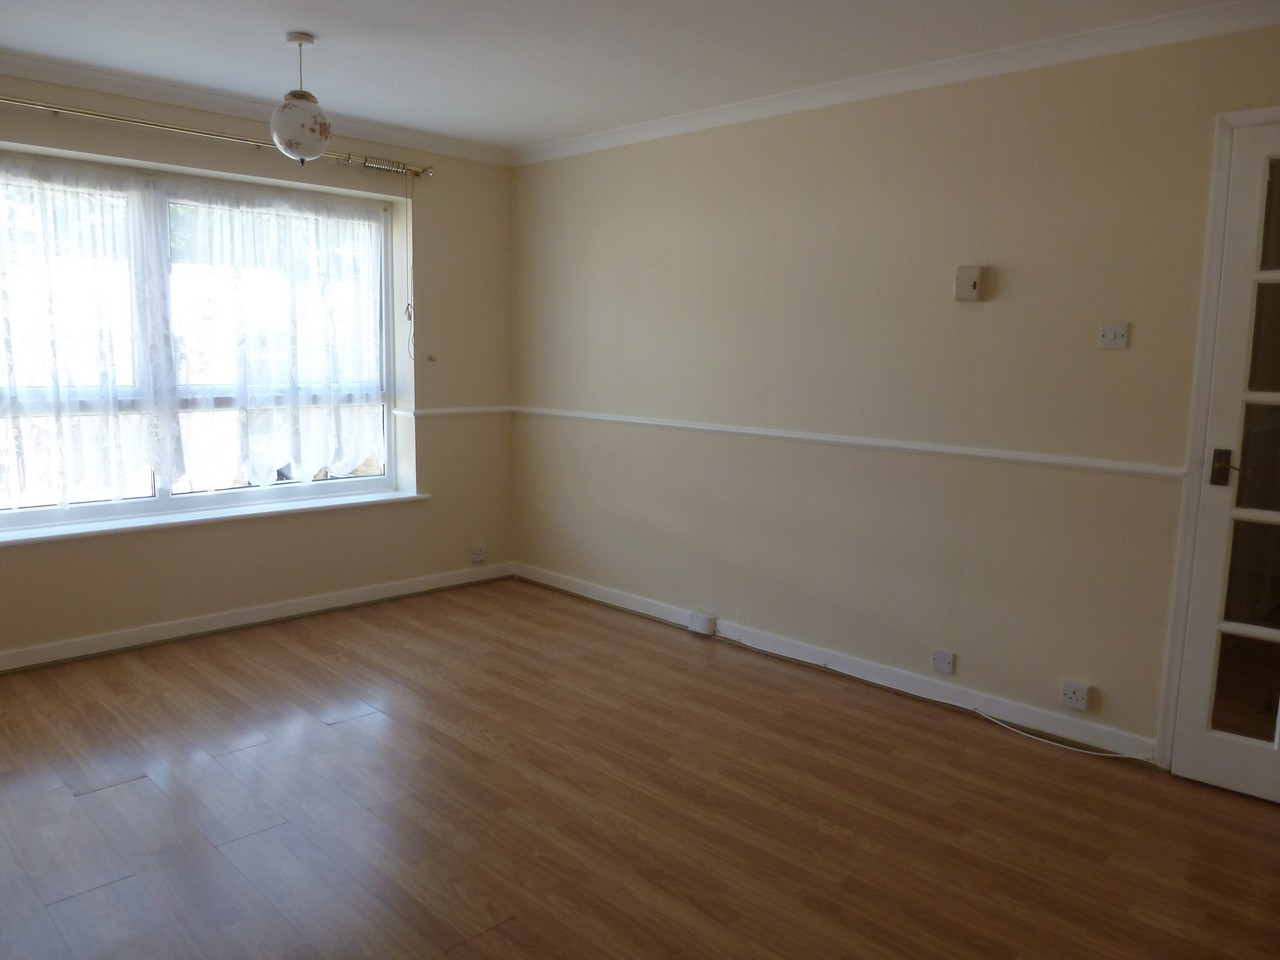 course, 1 bedroom flat to rent london common